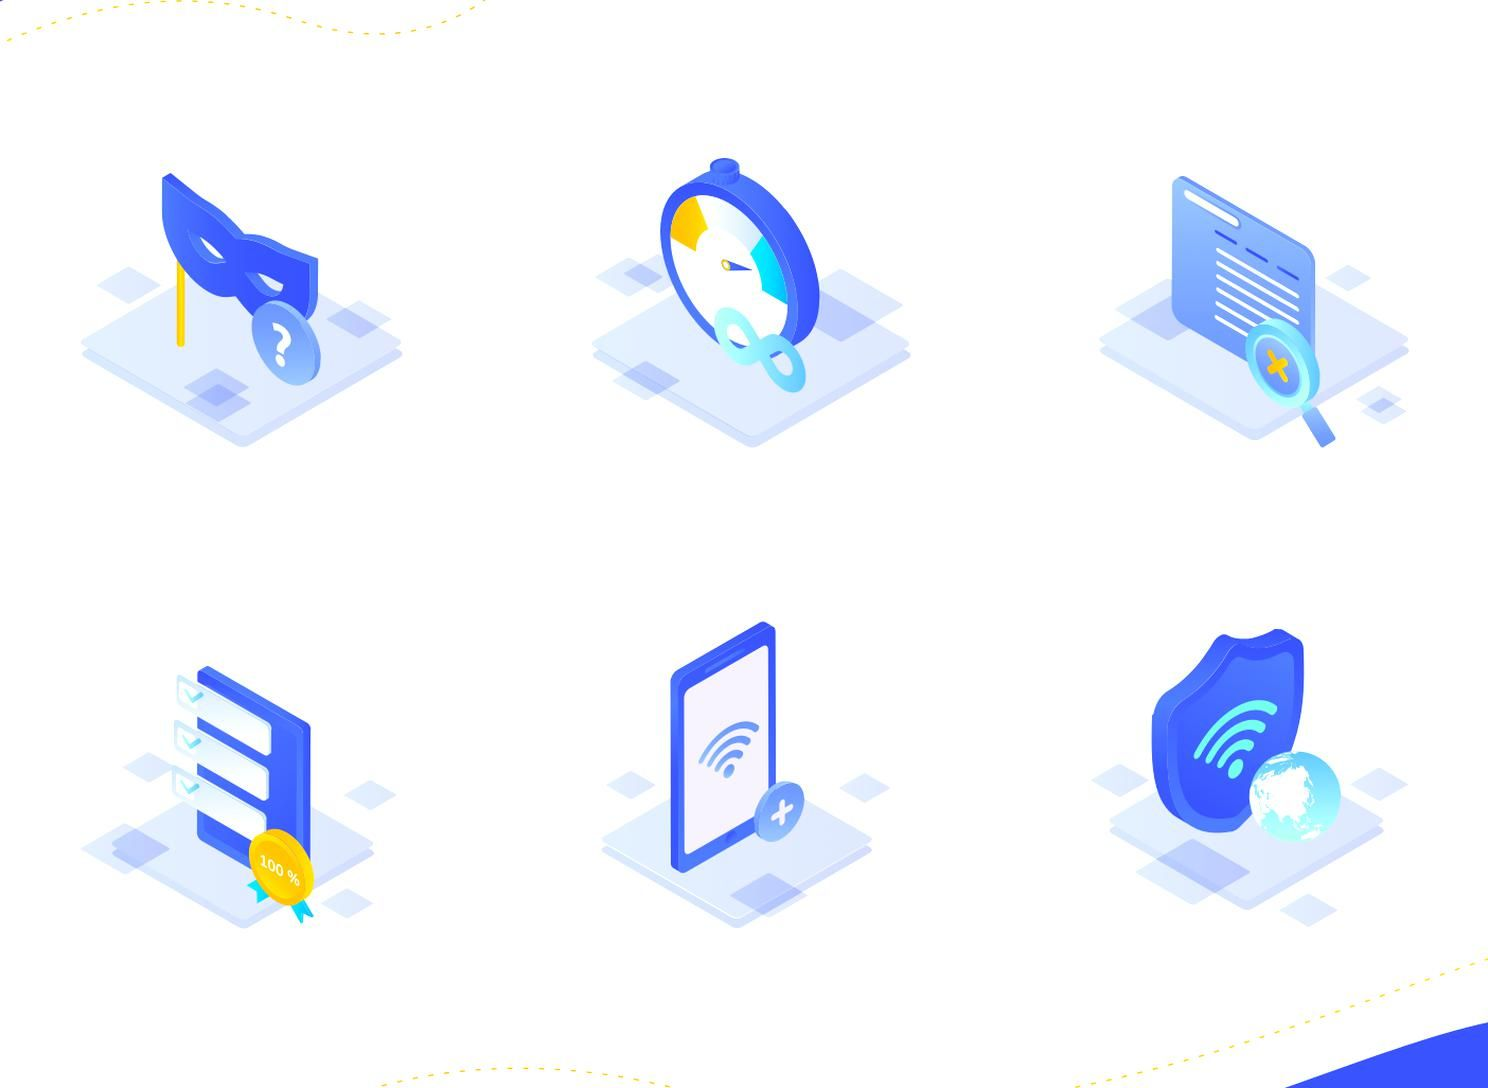 Monkeysock Icon Interner Globe Incognito Award Seo Search Engine Database Vpn Mobile Protection Privacy In 2020 Web Design Icon Isometric Design Isometric Illustration